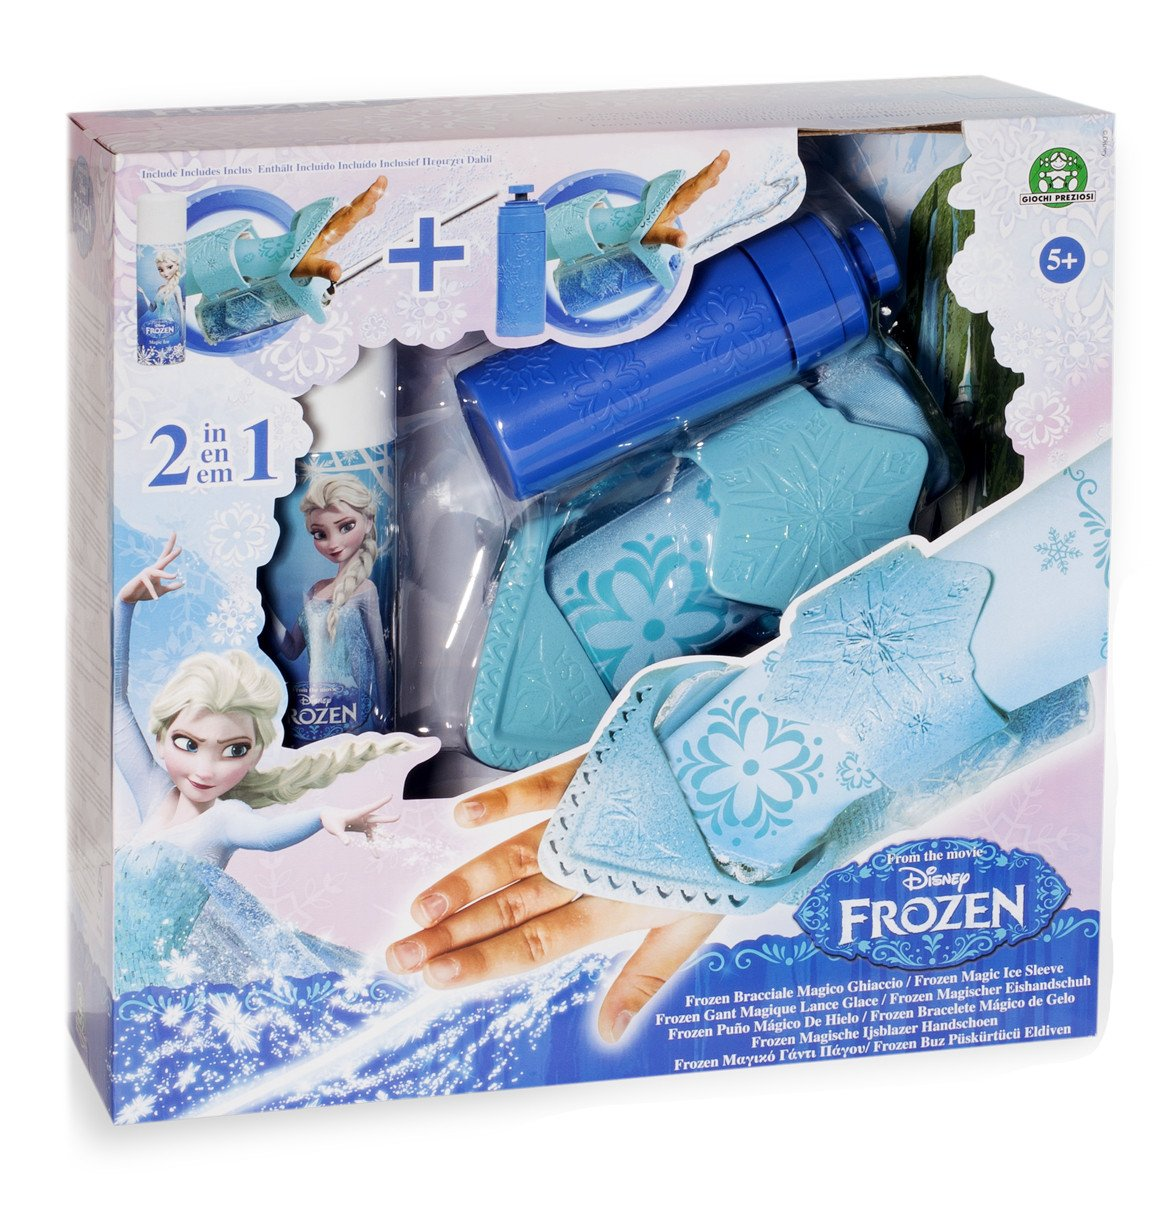 752a78acd3 Giochi Preziosi Frozen Trolley Spinner Con Gadget: Amazon.it: Valigeria